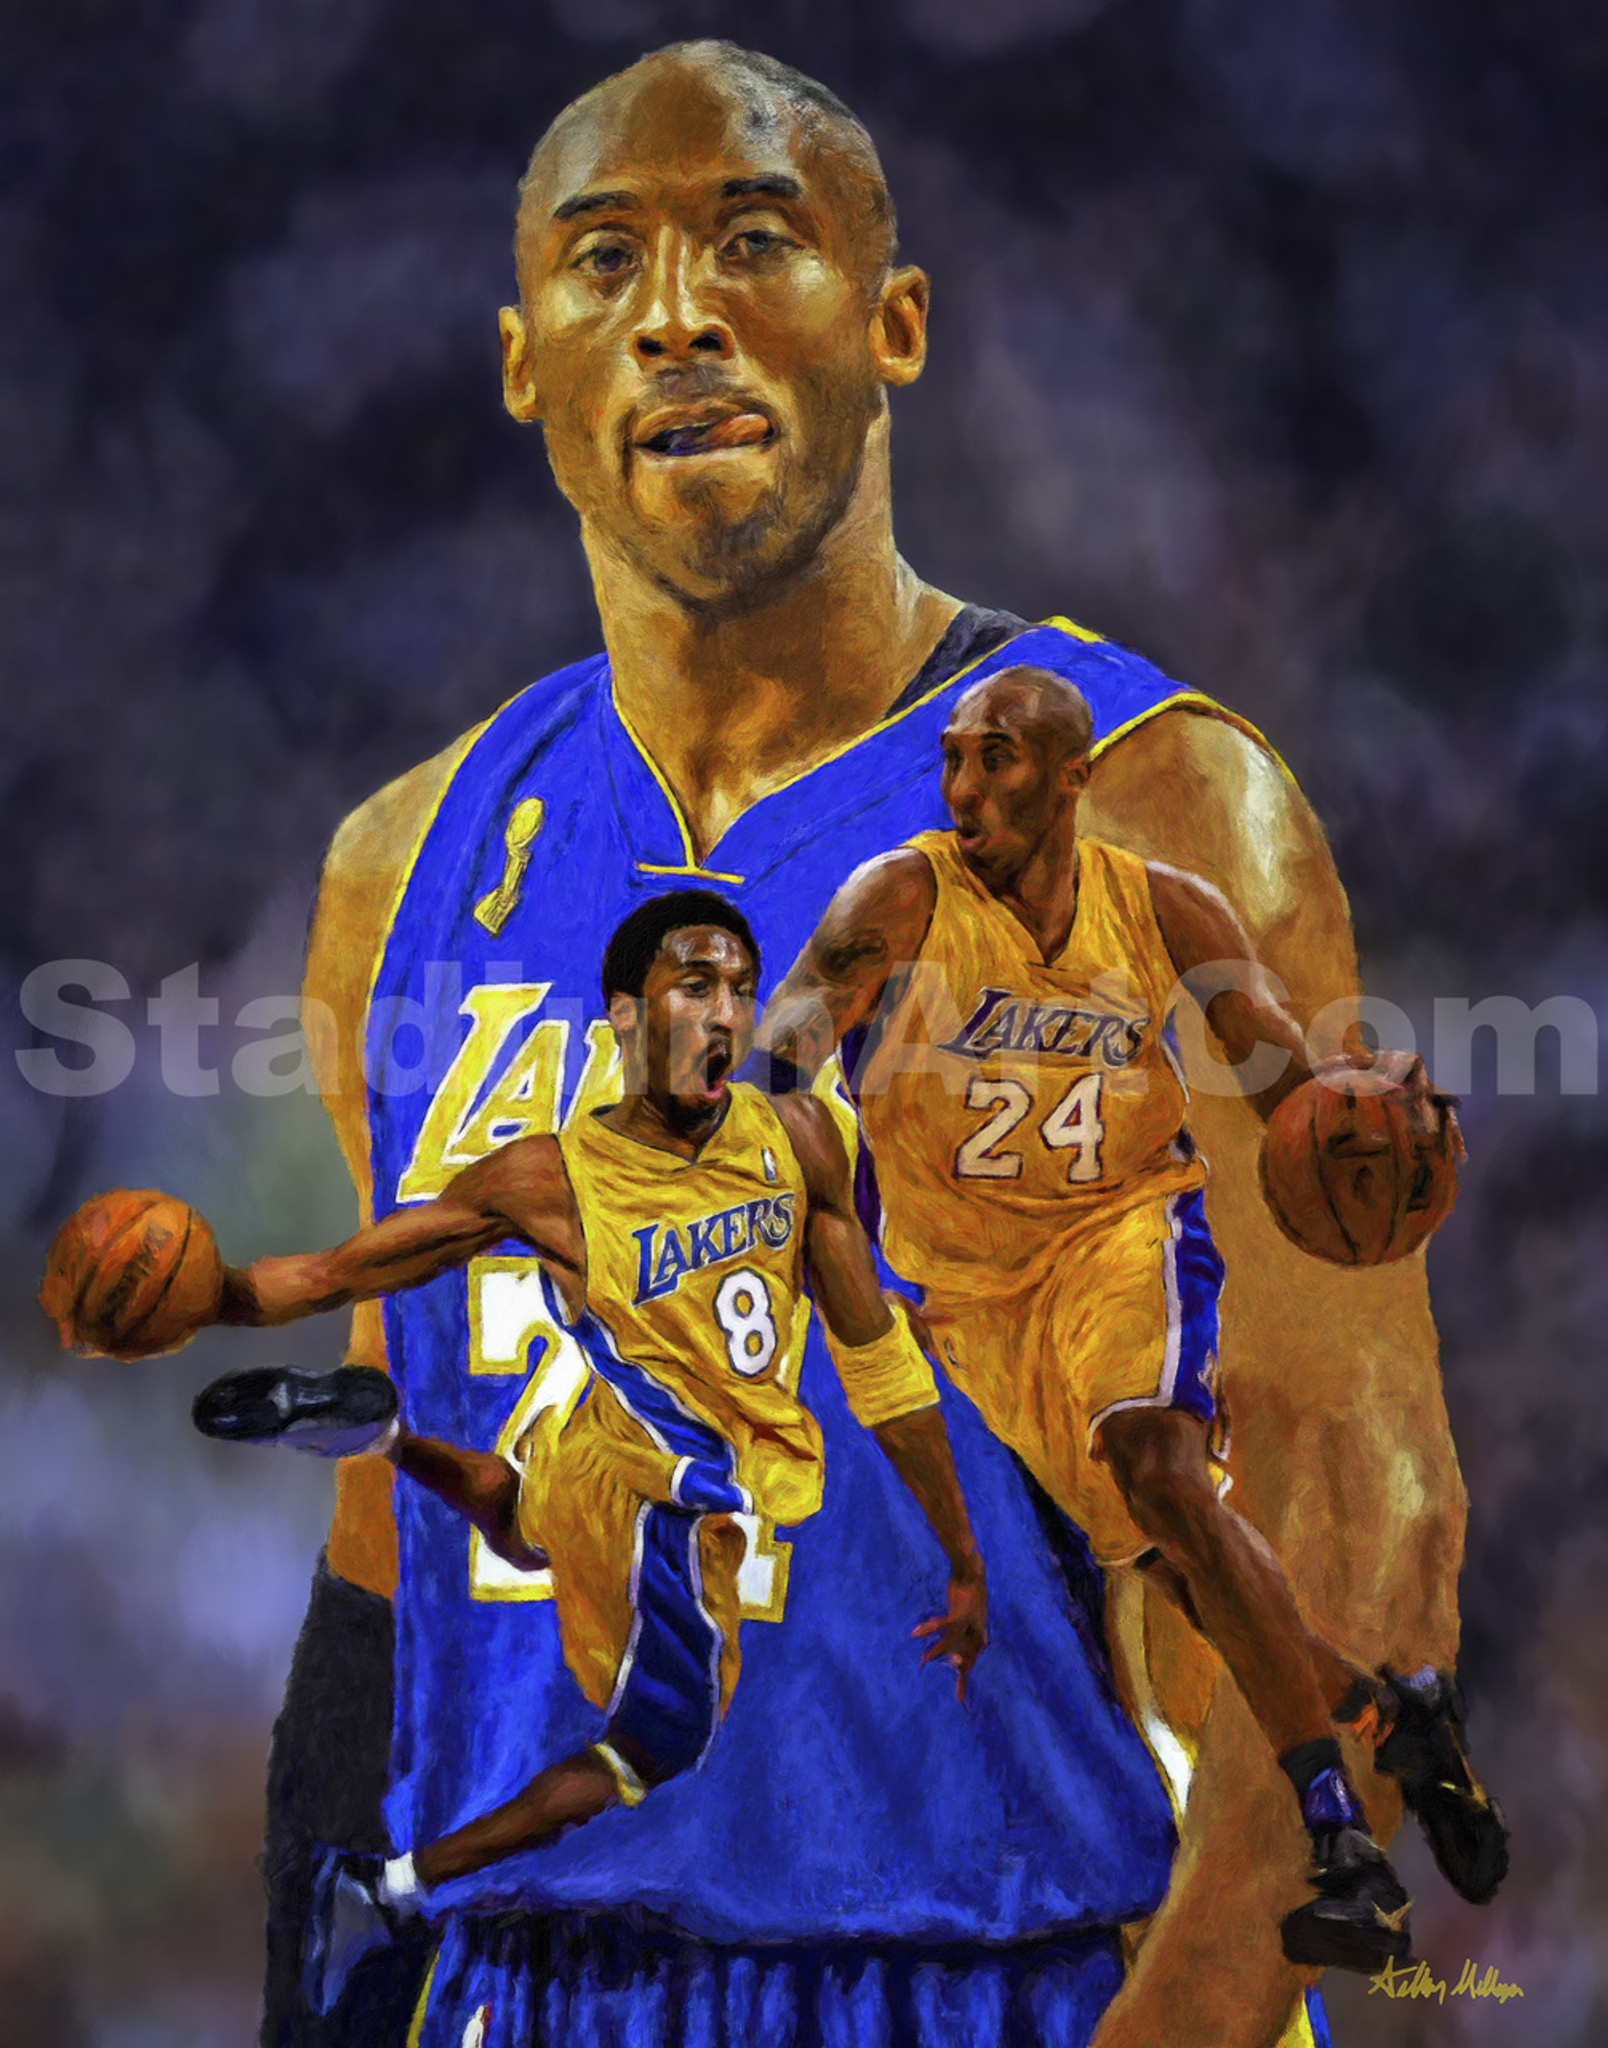 caa917873cae Kobe Bryant Los Angeles Lakers Art 3 NBA Basketball 8x10 to 48x36 ...